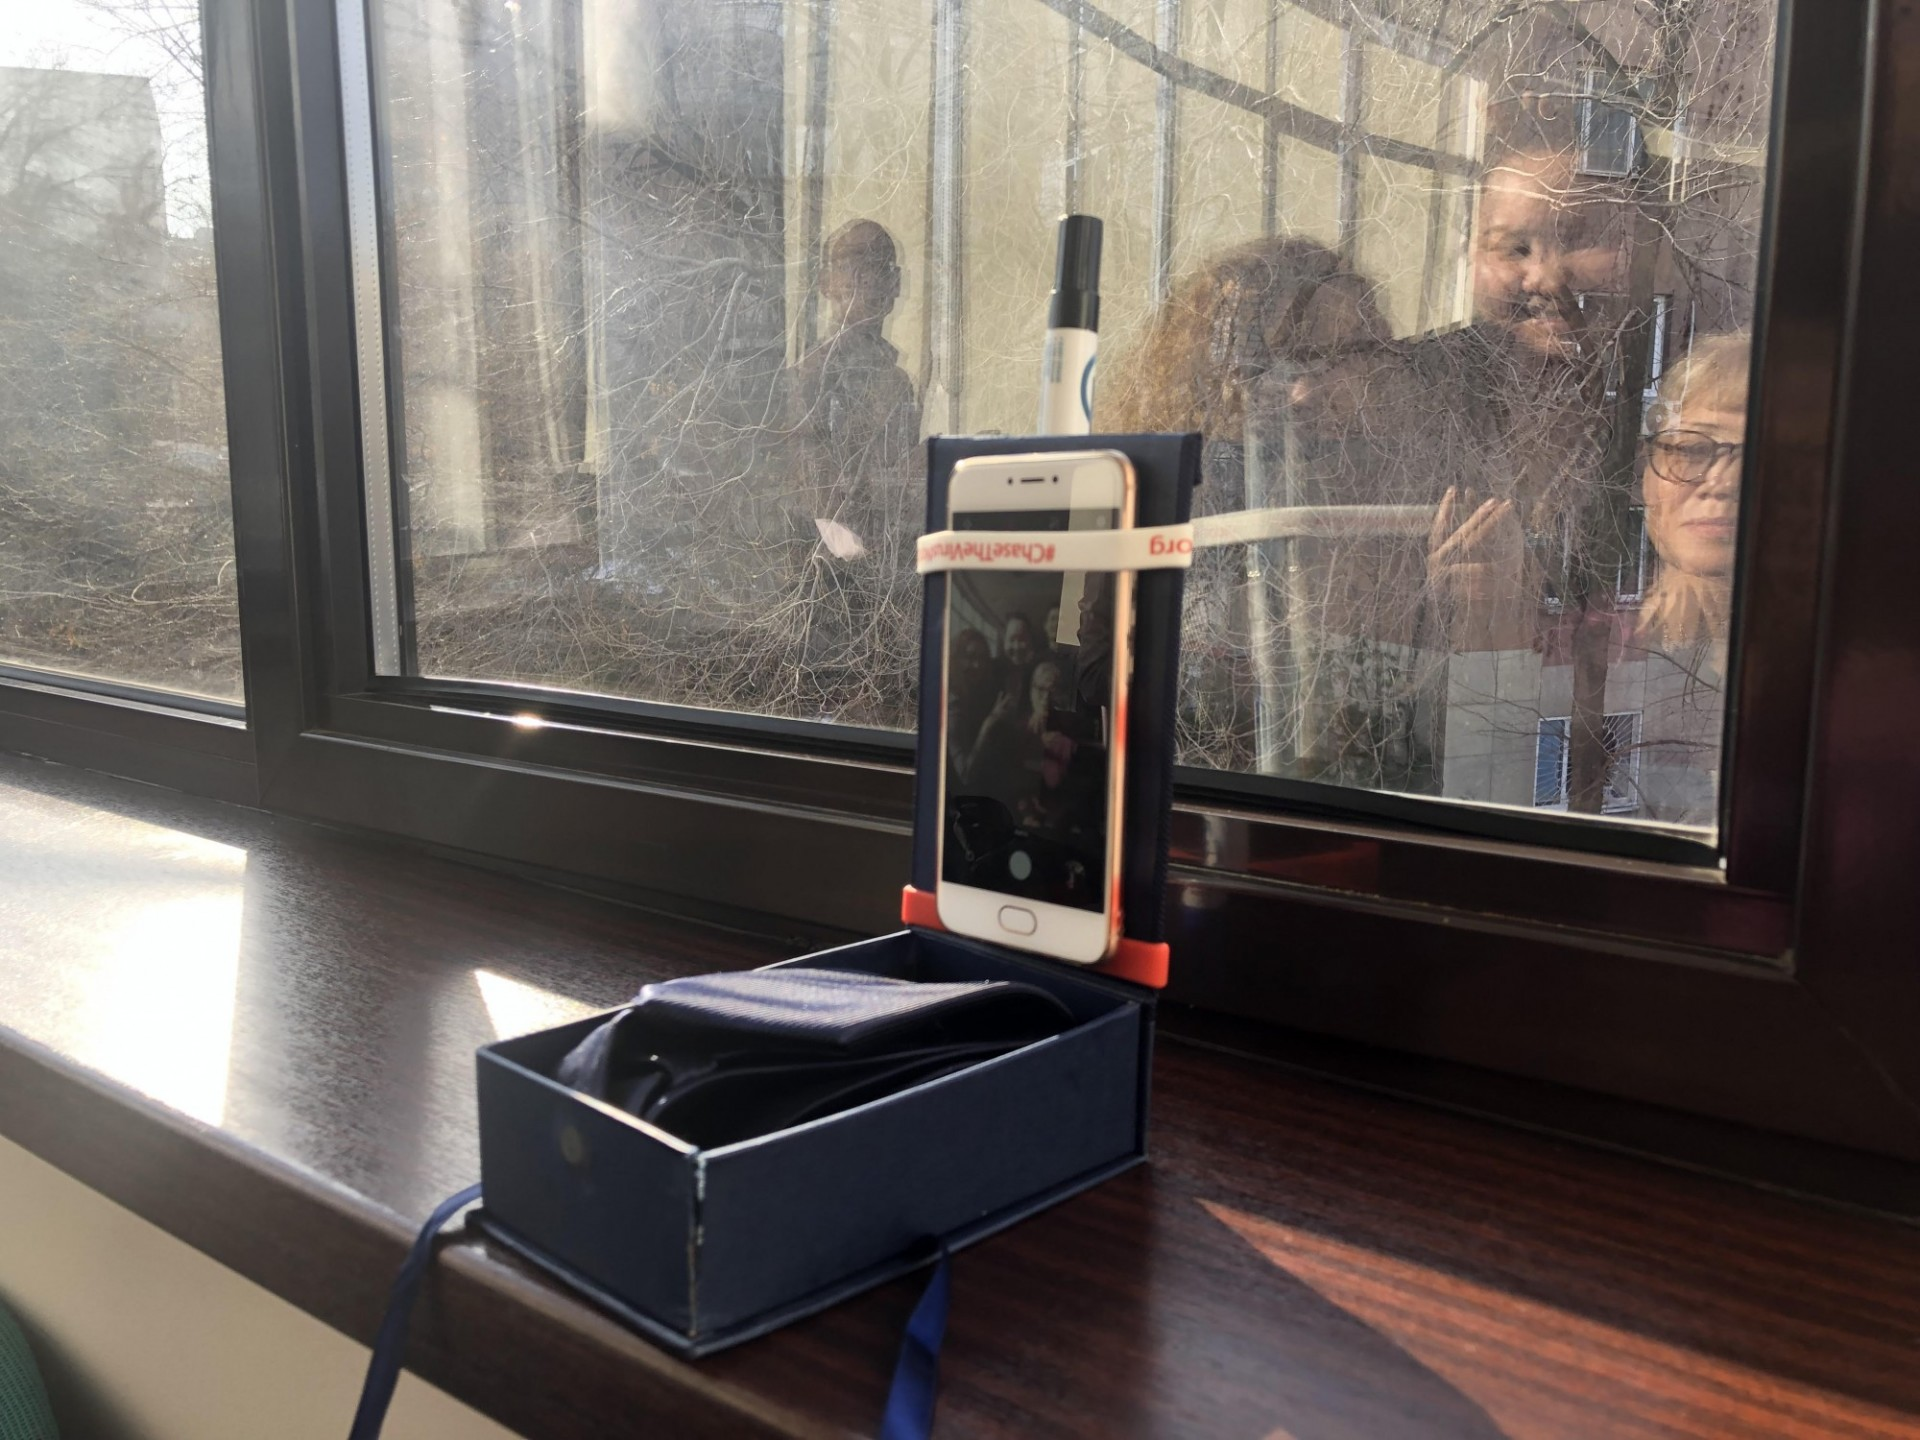 a smartphone taped to a box and window as a stand